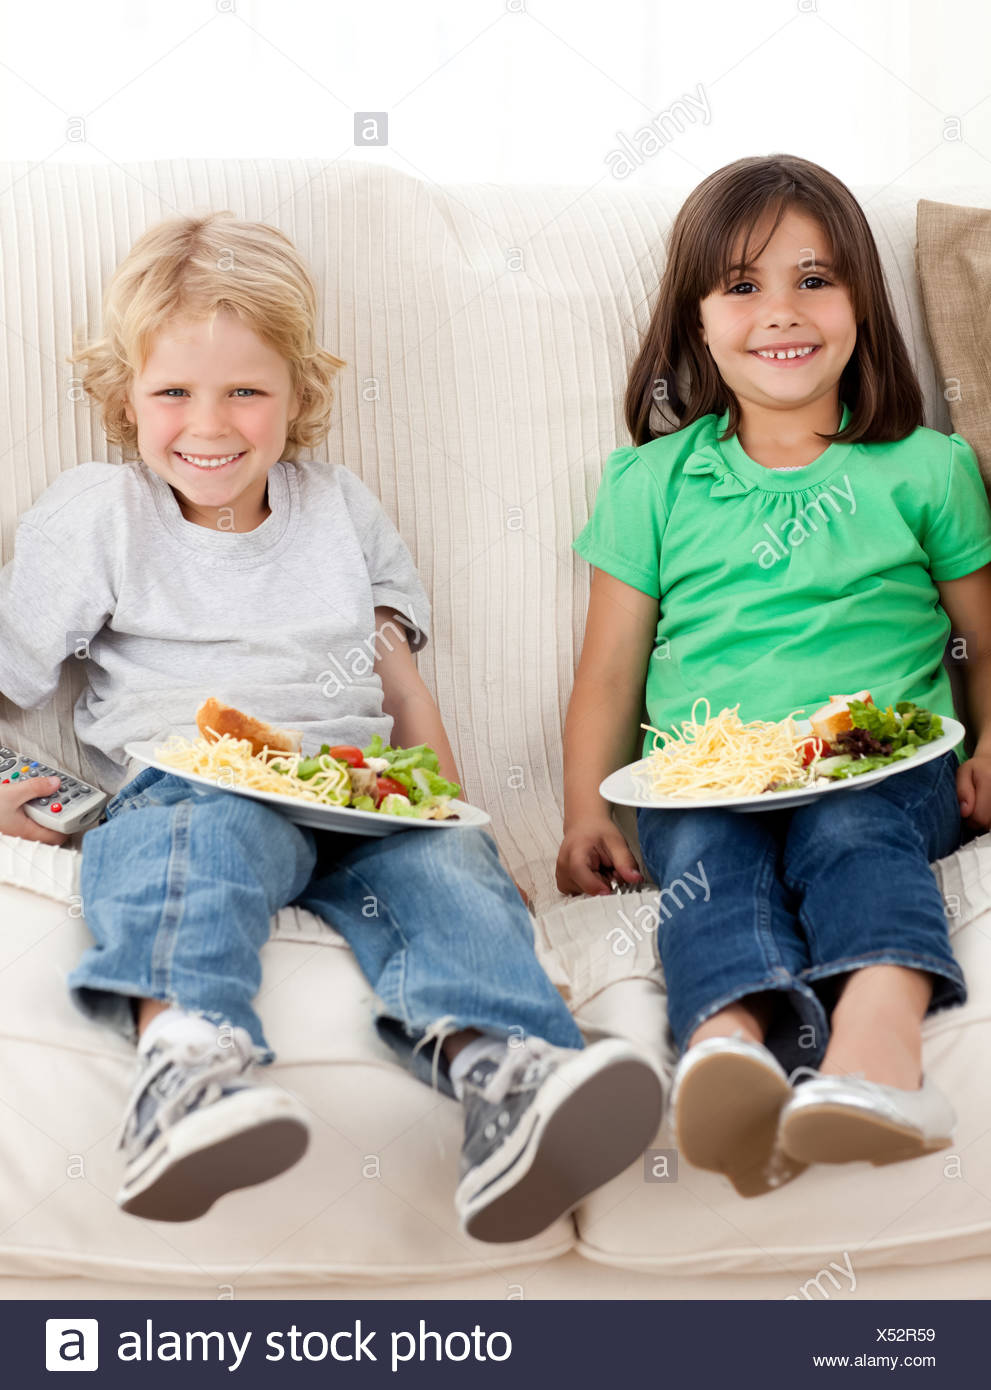 Happy brother and sister watching television while eating pasta - Stock Image